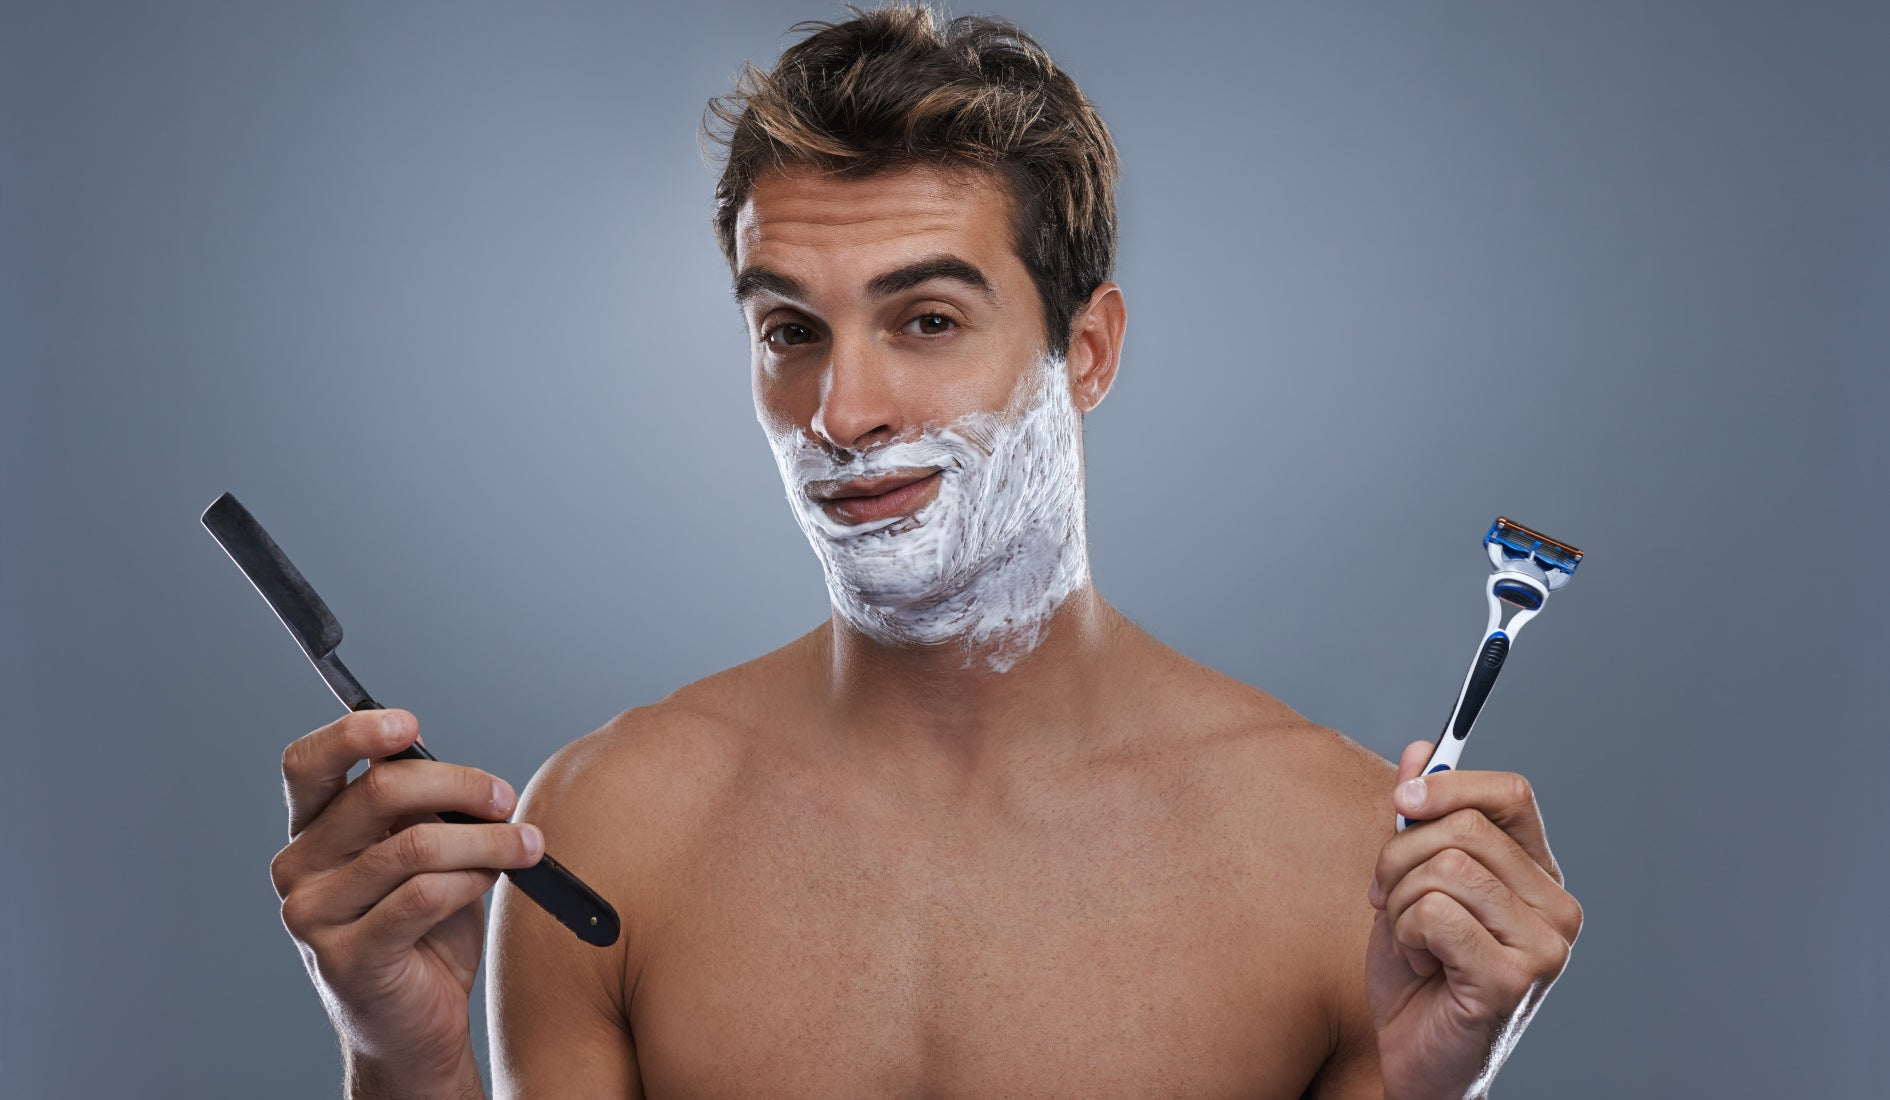 which razor to use to shave properly